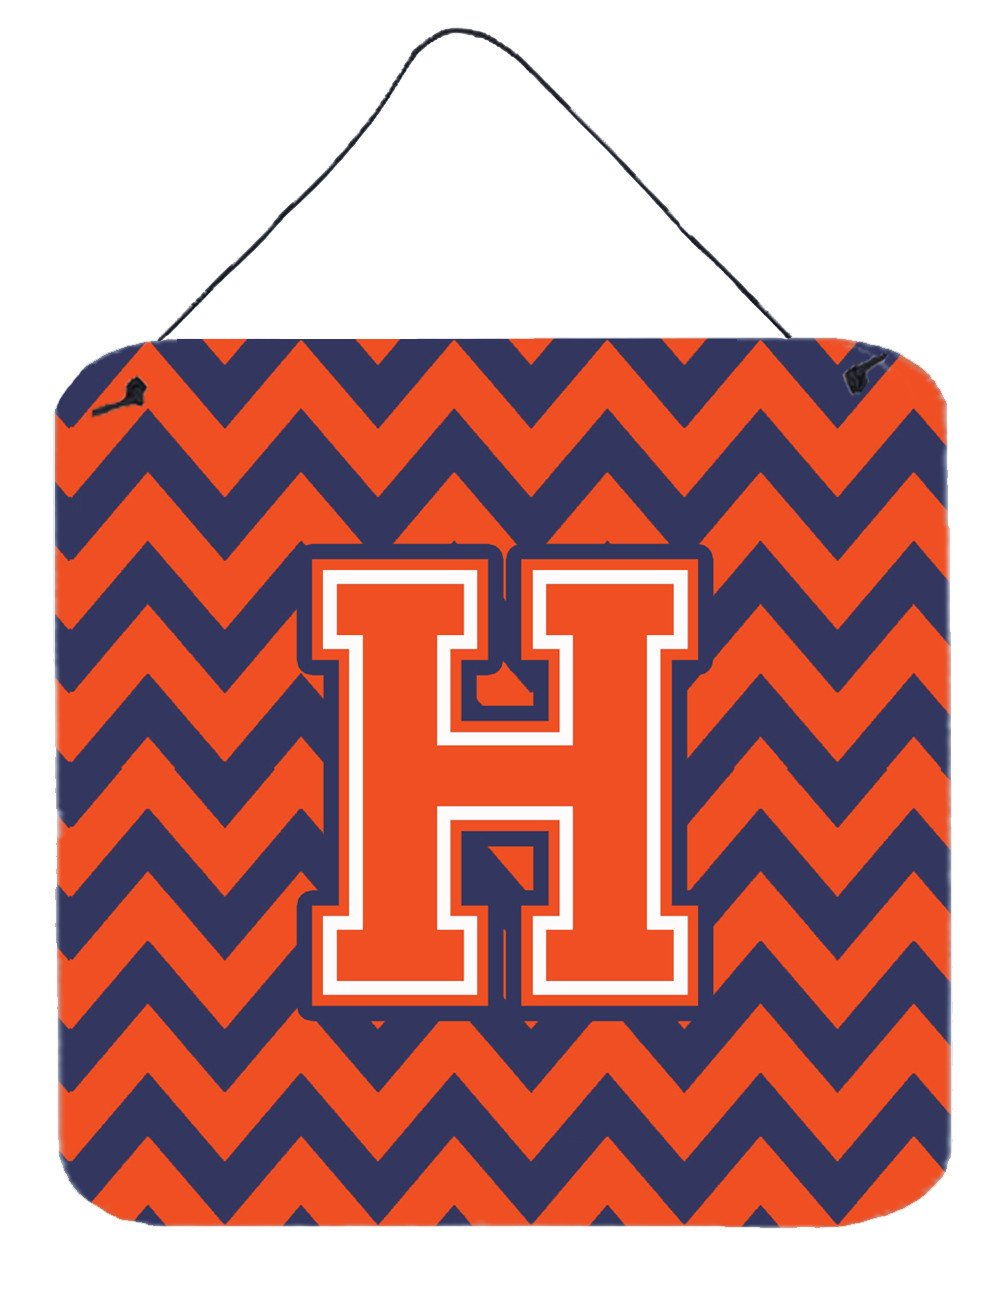 Letter H Chevron Orange and Blue Wall or Door Hanging Prints CJ1042-HDS66 by Caroline's Treasures